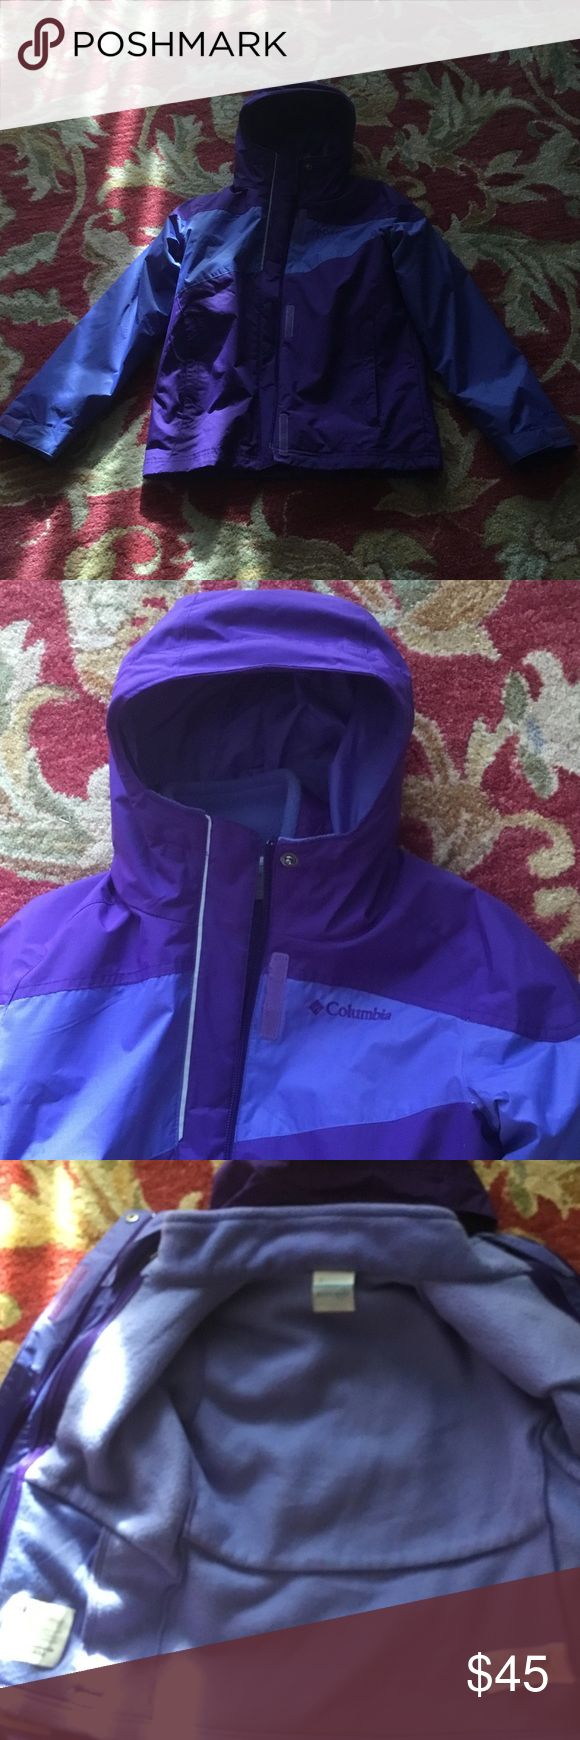 Columbia interchange jacket. Size 8 Wow this is a beautiful Columbia jacket combination 2 coats in one ....zippers together super Duper condition size 8.  2 shades  of purple absolutely beautiful pet and smoke free home thank you for looking Columbia Jackets & Coats